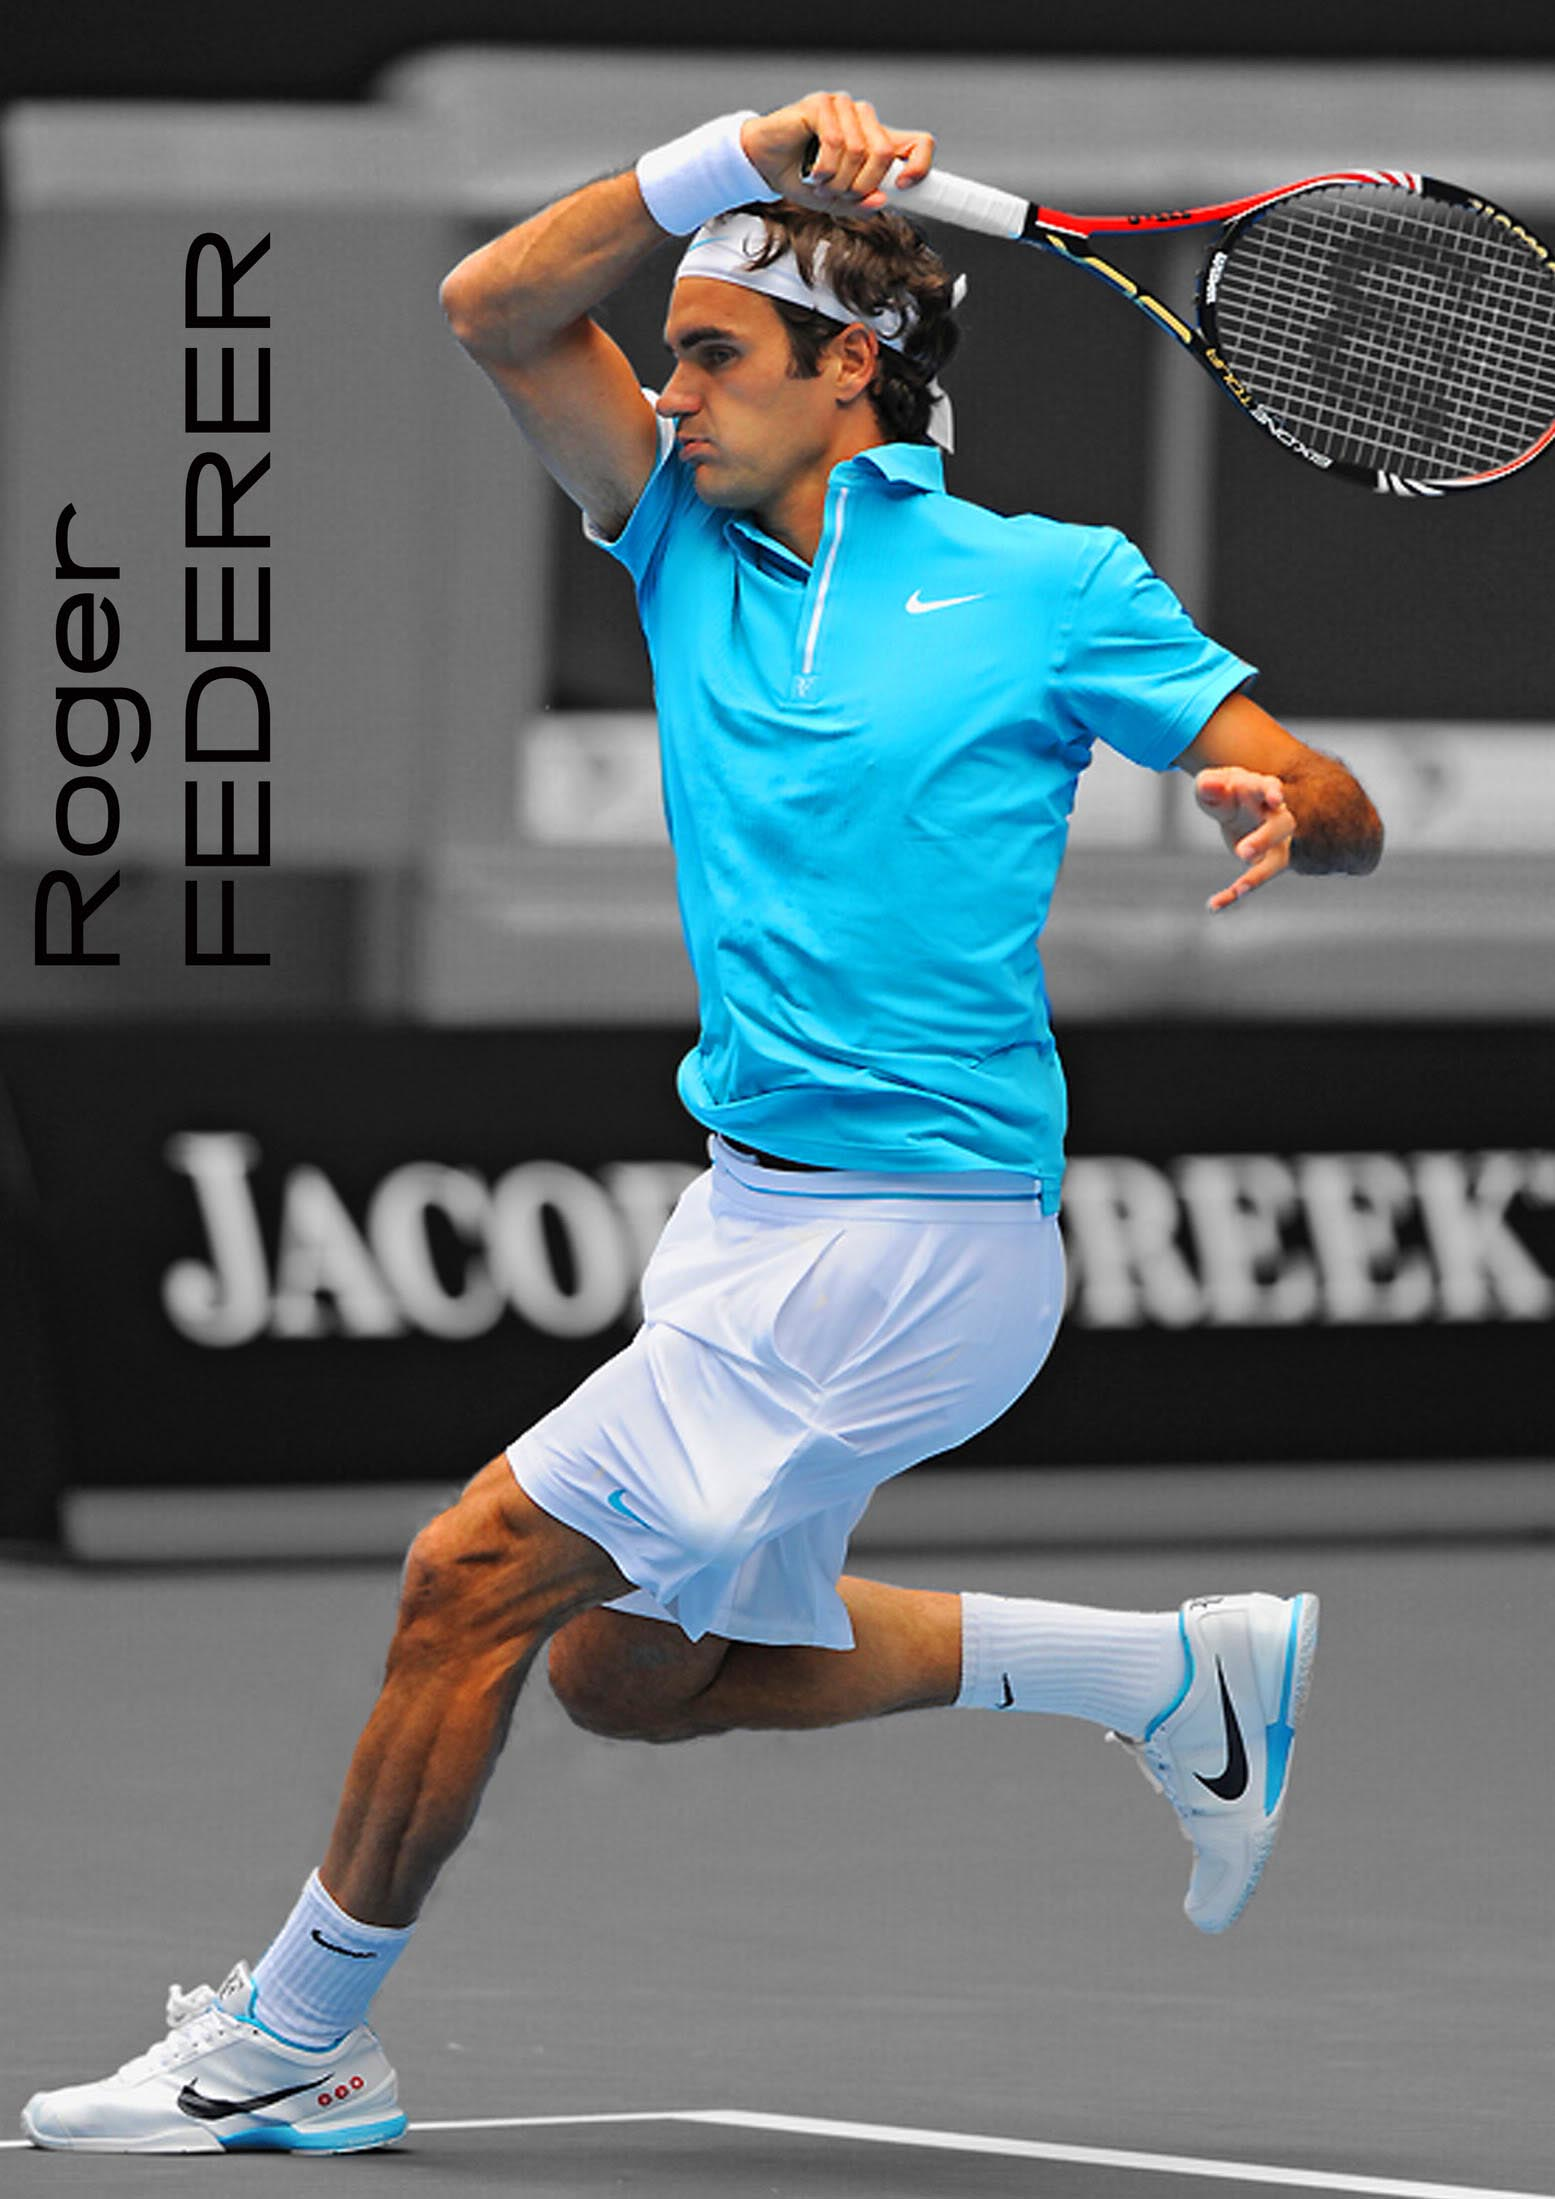 roger federer2 Roger Federer No. 2 ATP Tennis Player